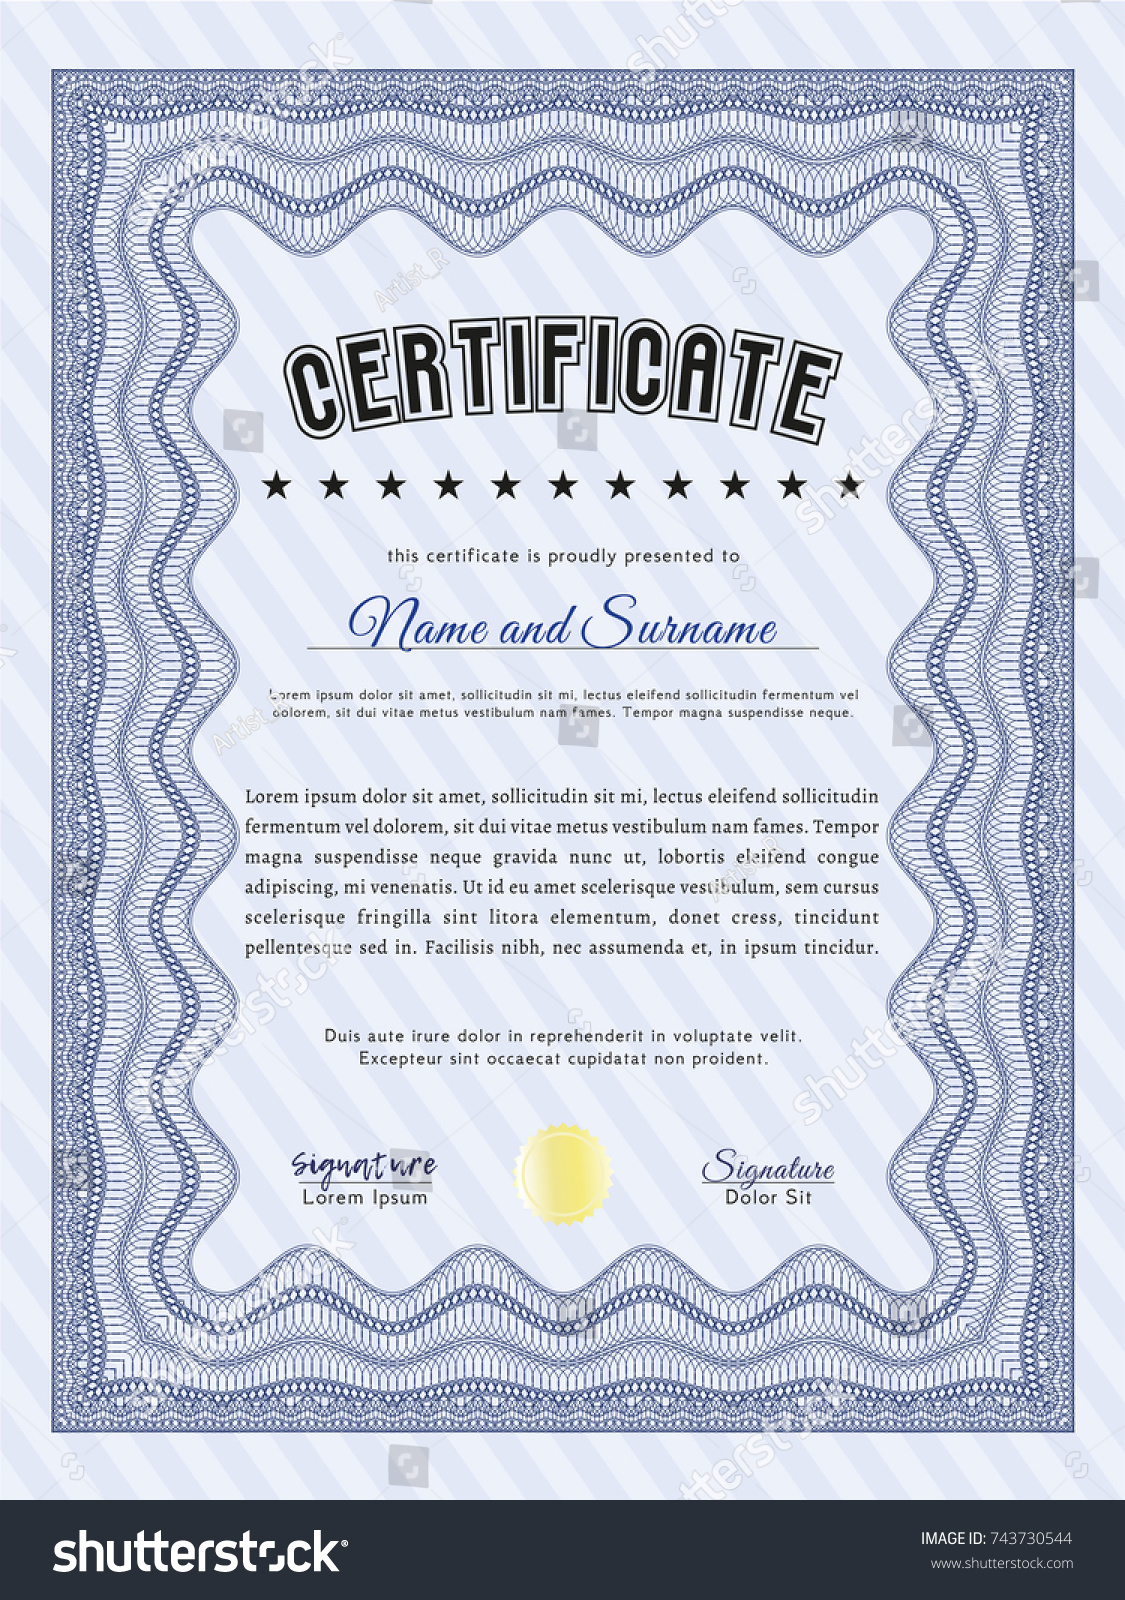 Chef certificate template image collections templates example certificate template for writing choice image certificate design chef certificate template gallery templates example free download yelopaper Gallery